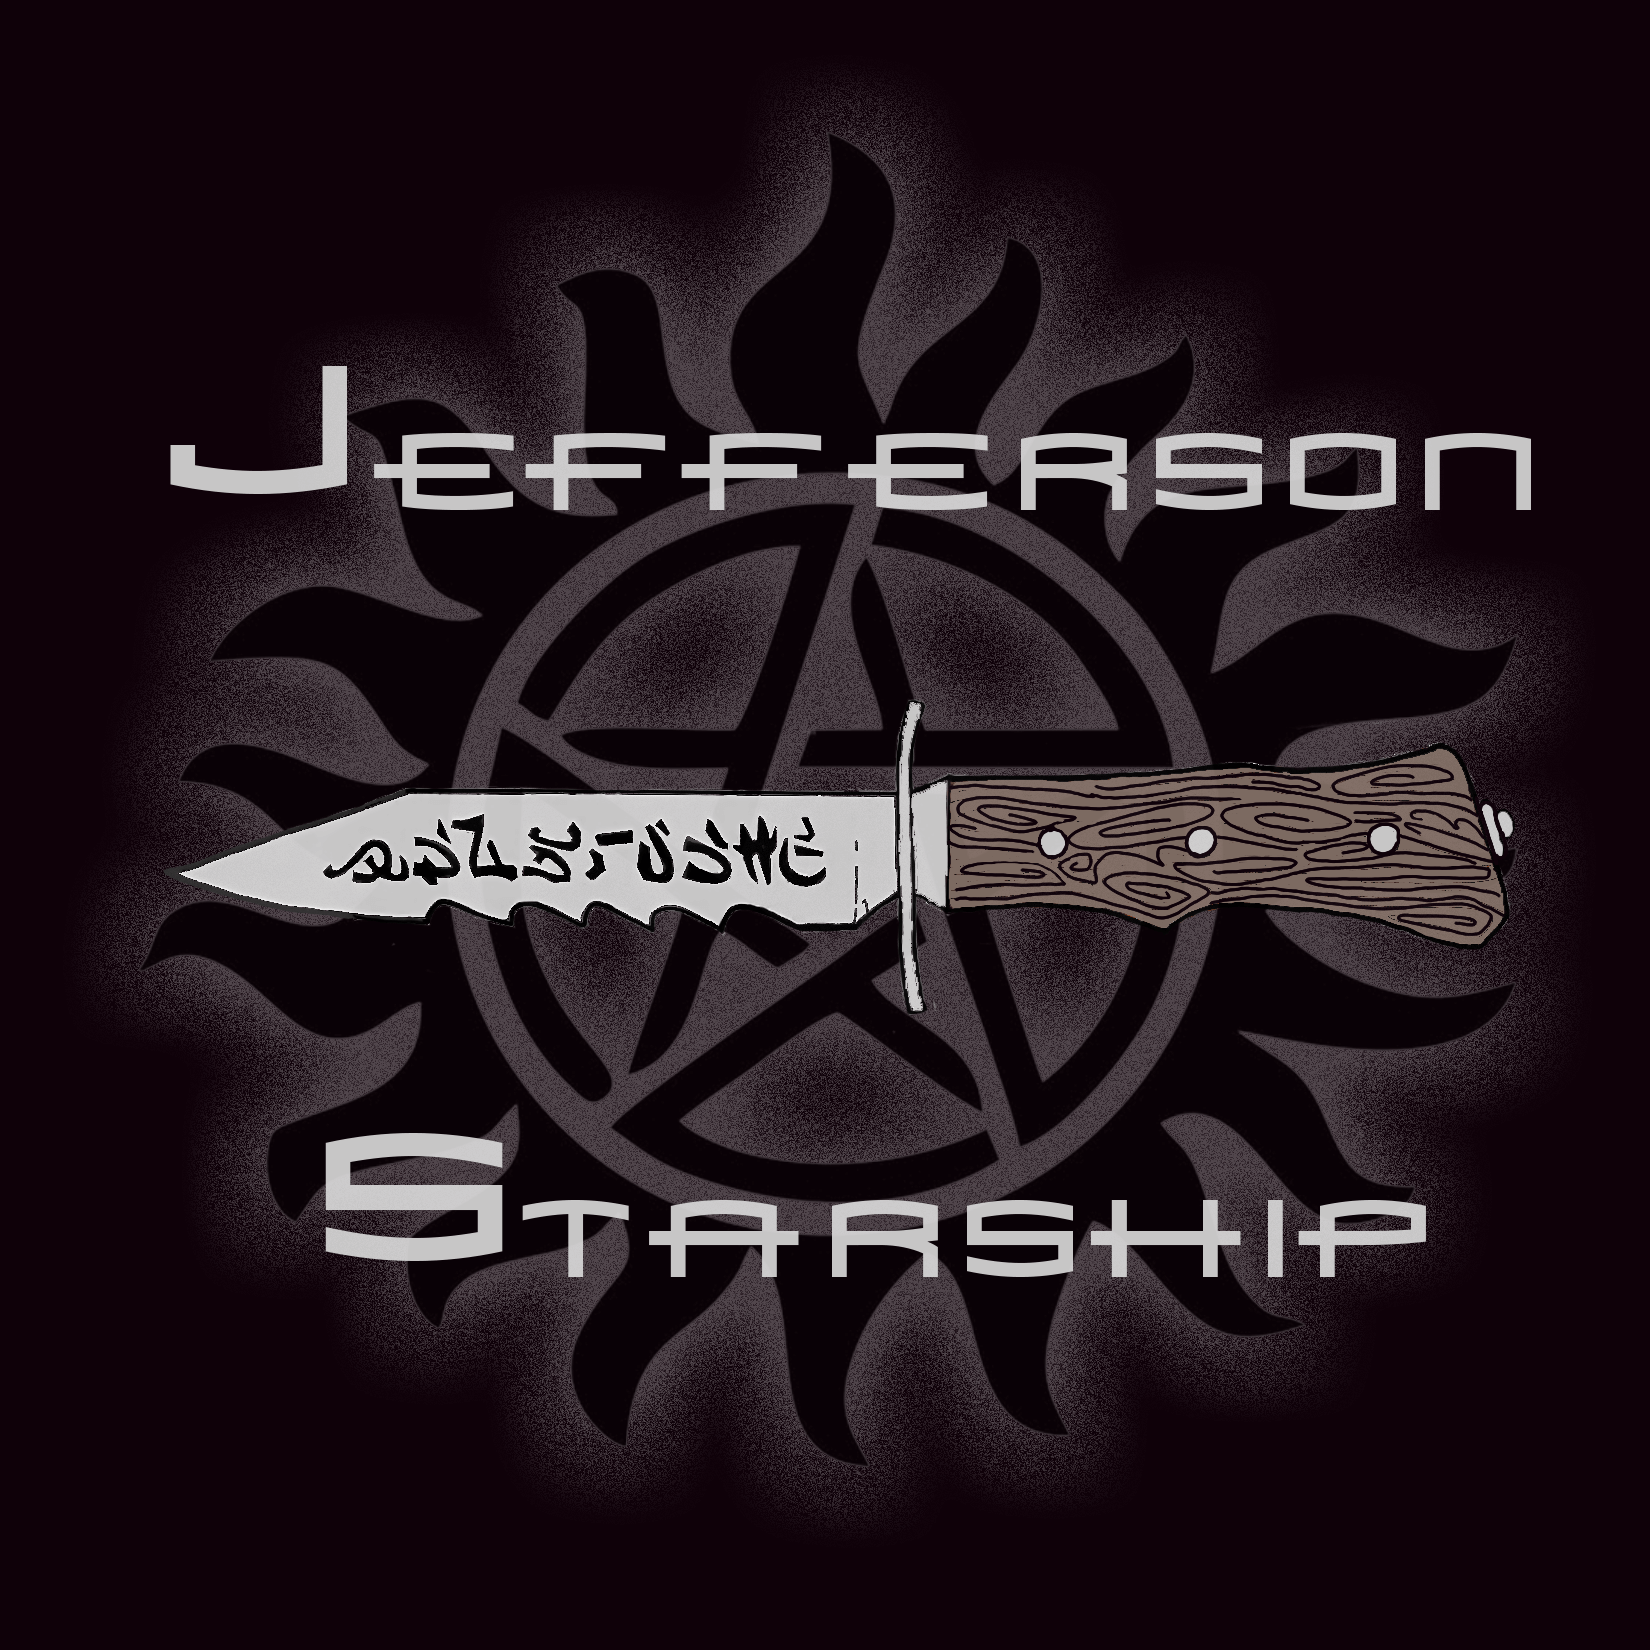 Team Jefferson Starship - The Scare Factor's South Carolina Halloween Haunted House Review Team